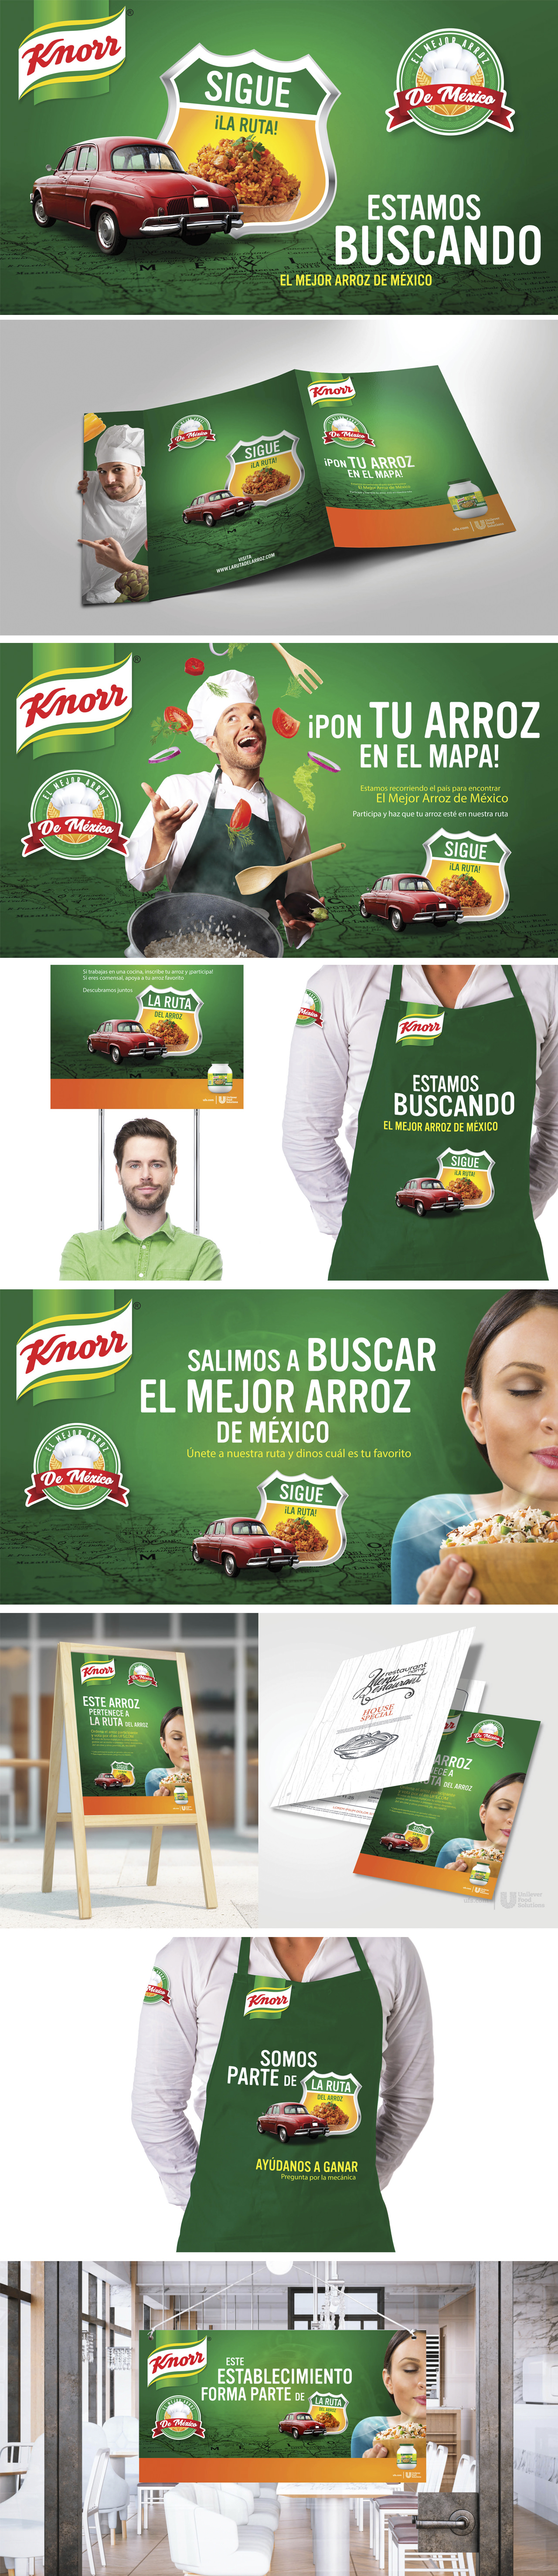 Knorr Smart Results